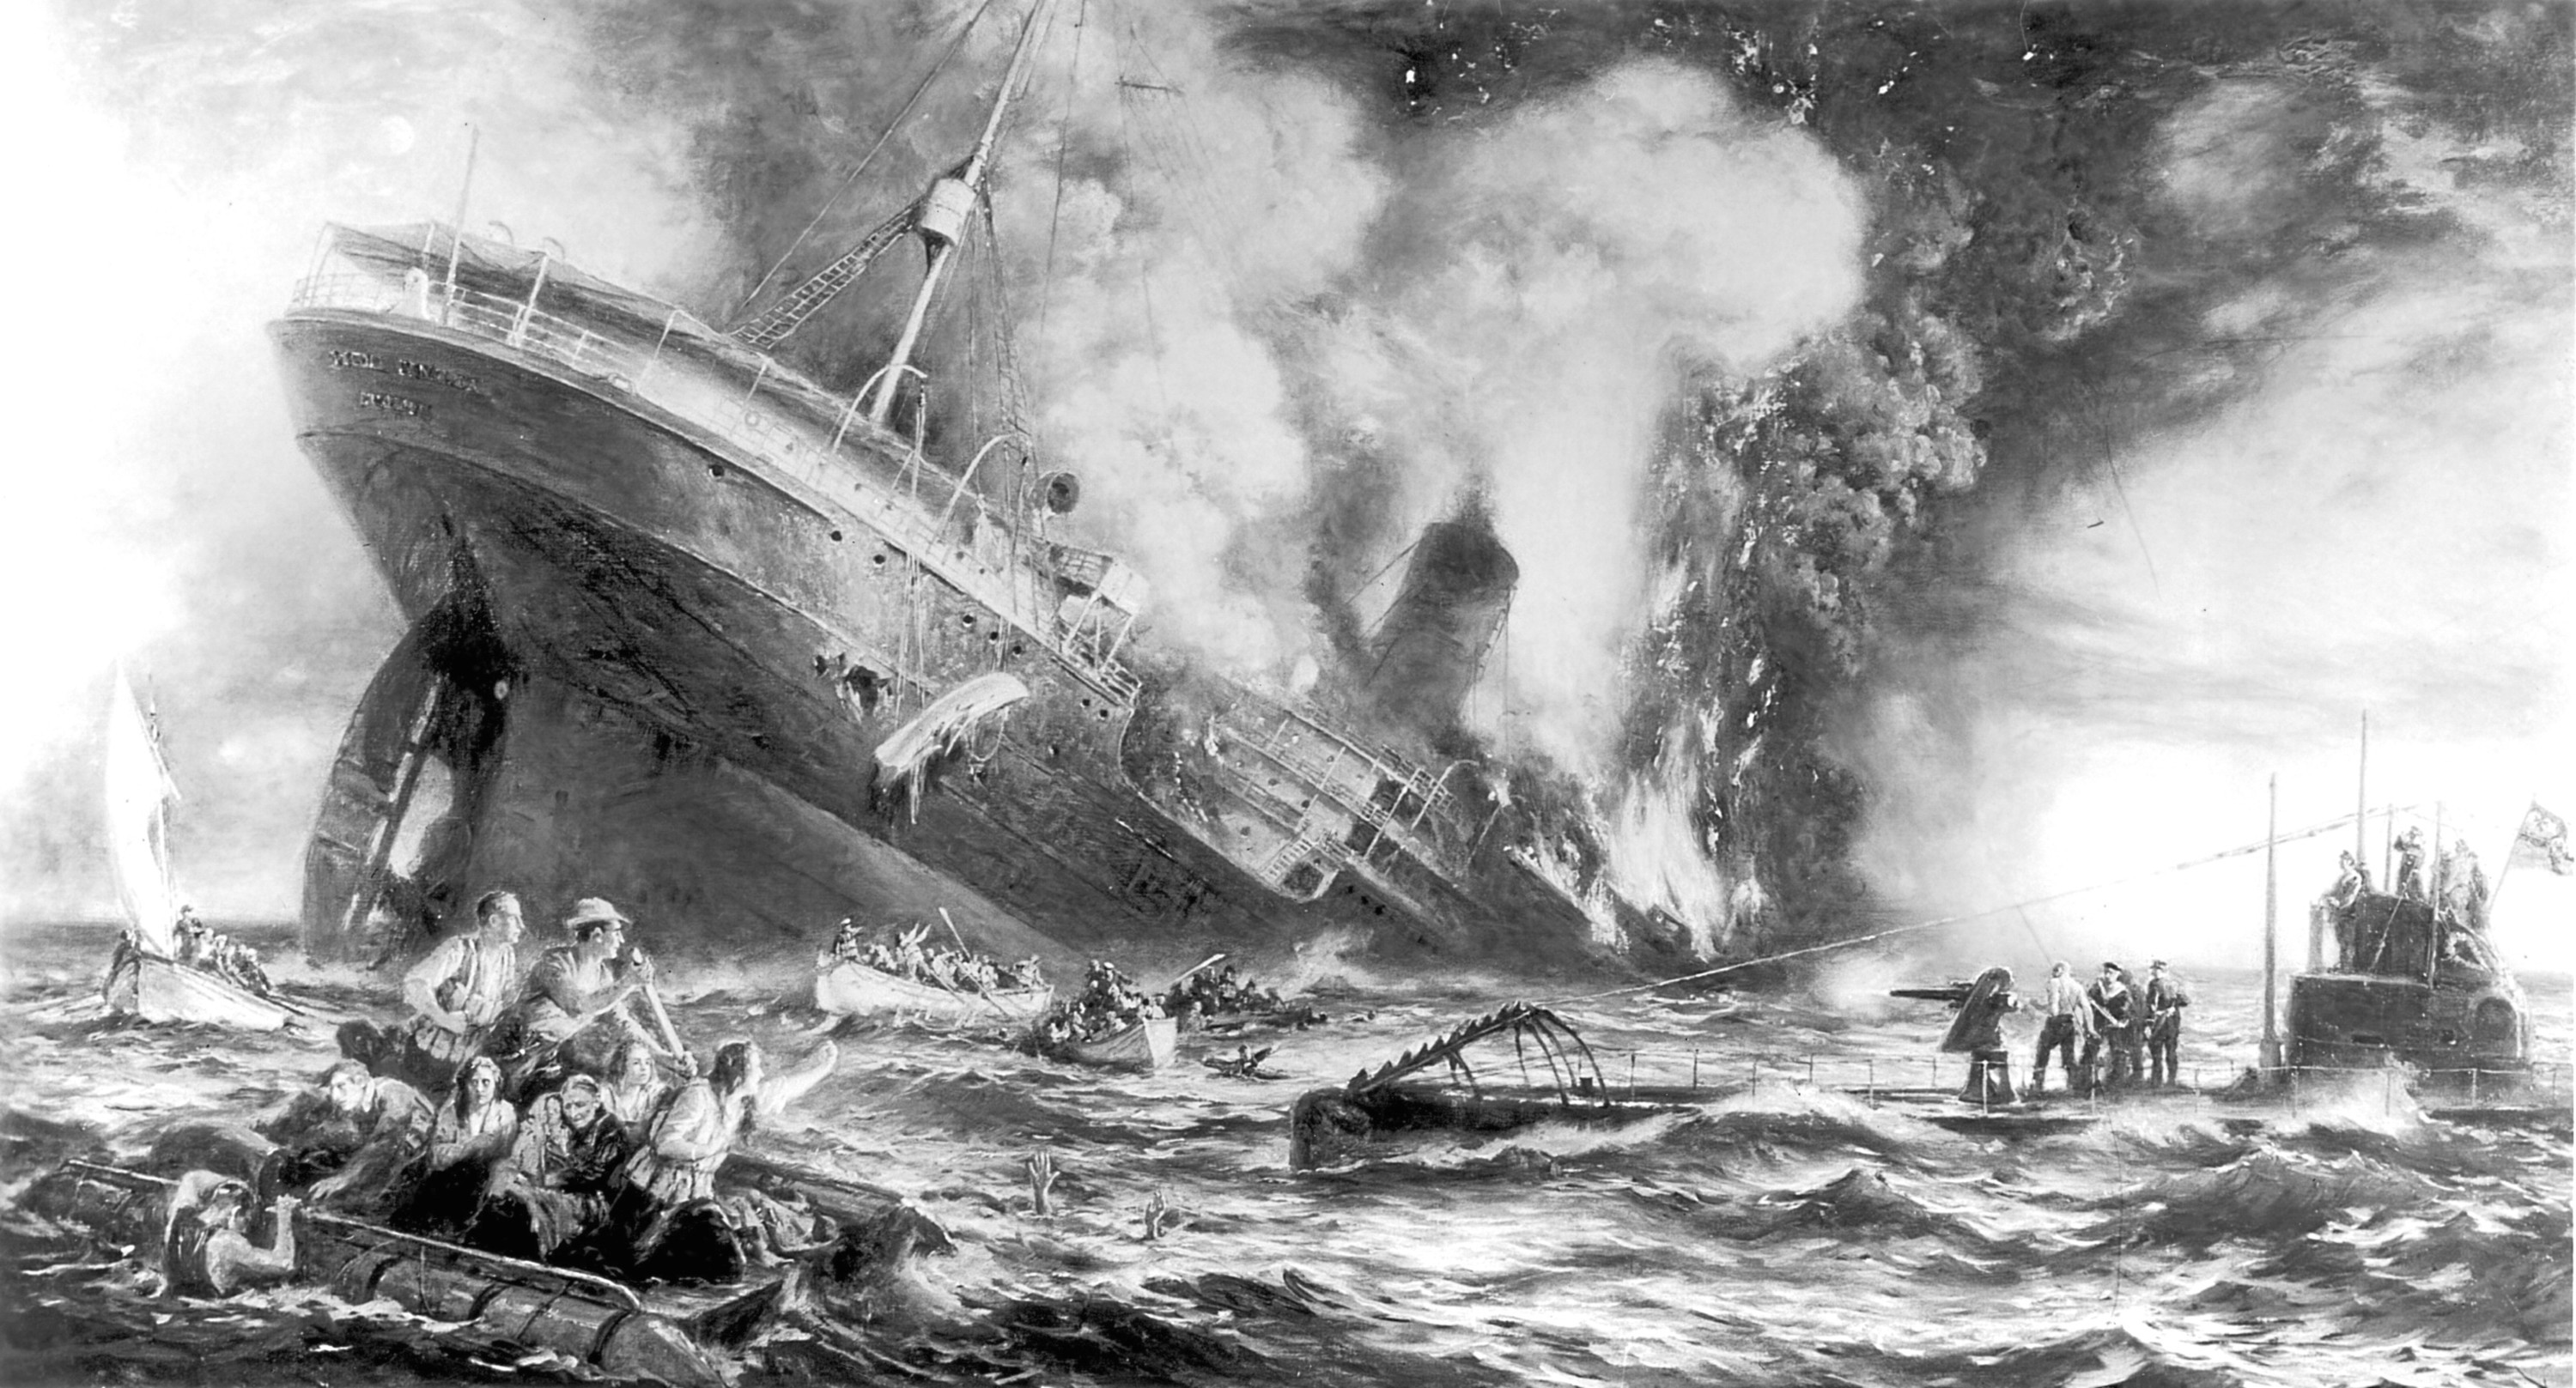 Conspiracy theorists maintain that the sinking of the Lusitania was no accident (Three Lions/Getty Images)